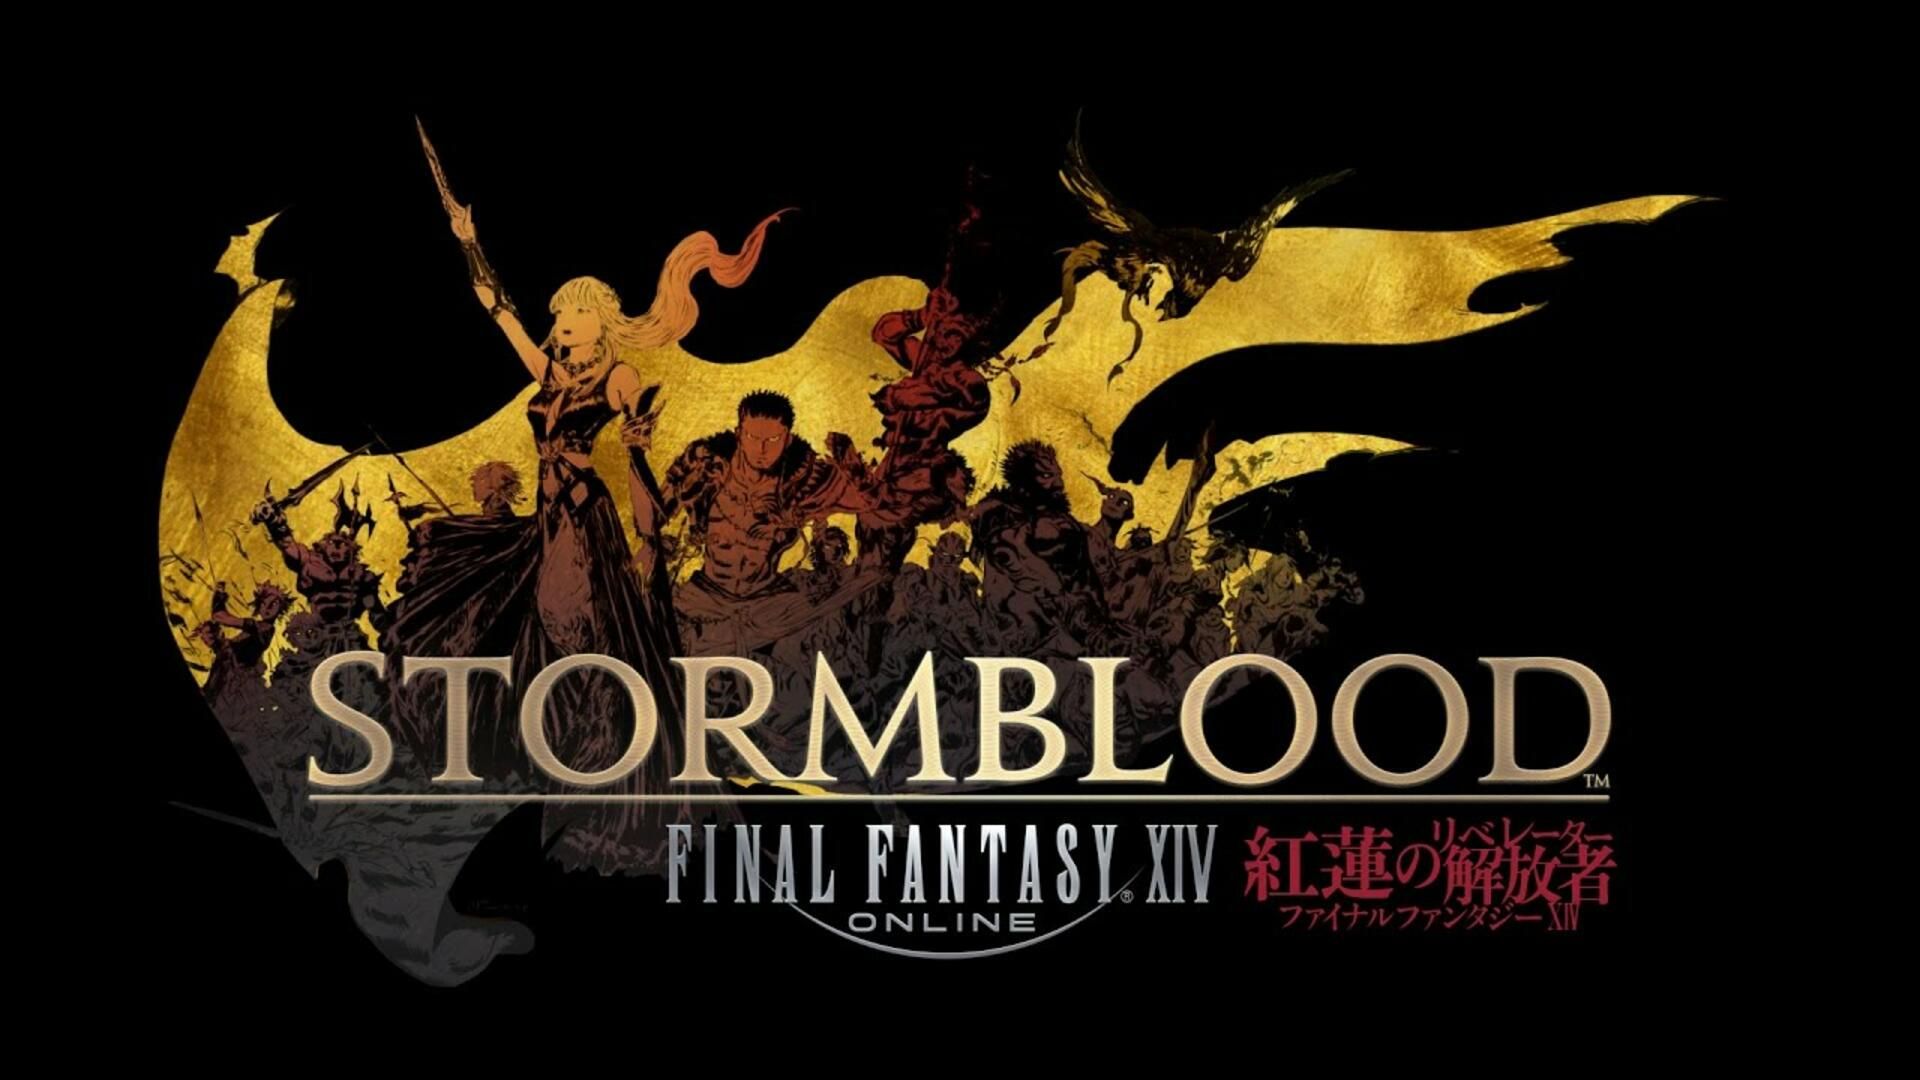 Final Fantasy XIV: Stormblood - Release Date, Price, Collector's Edition, New Quests, New Items - Everything We Know